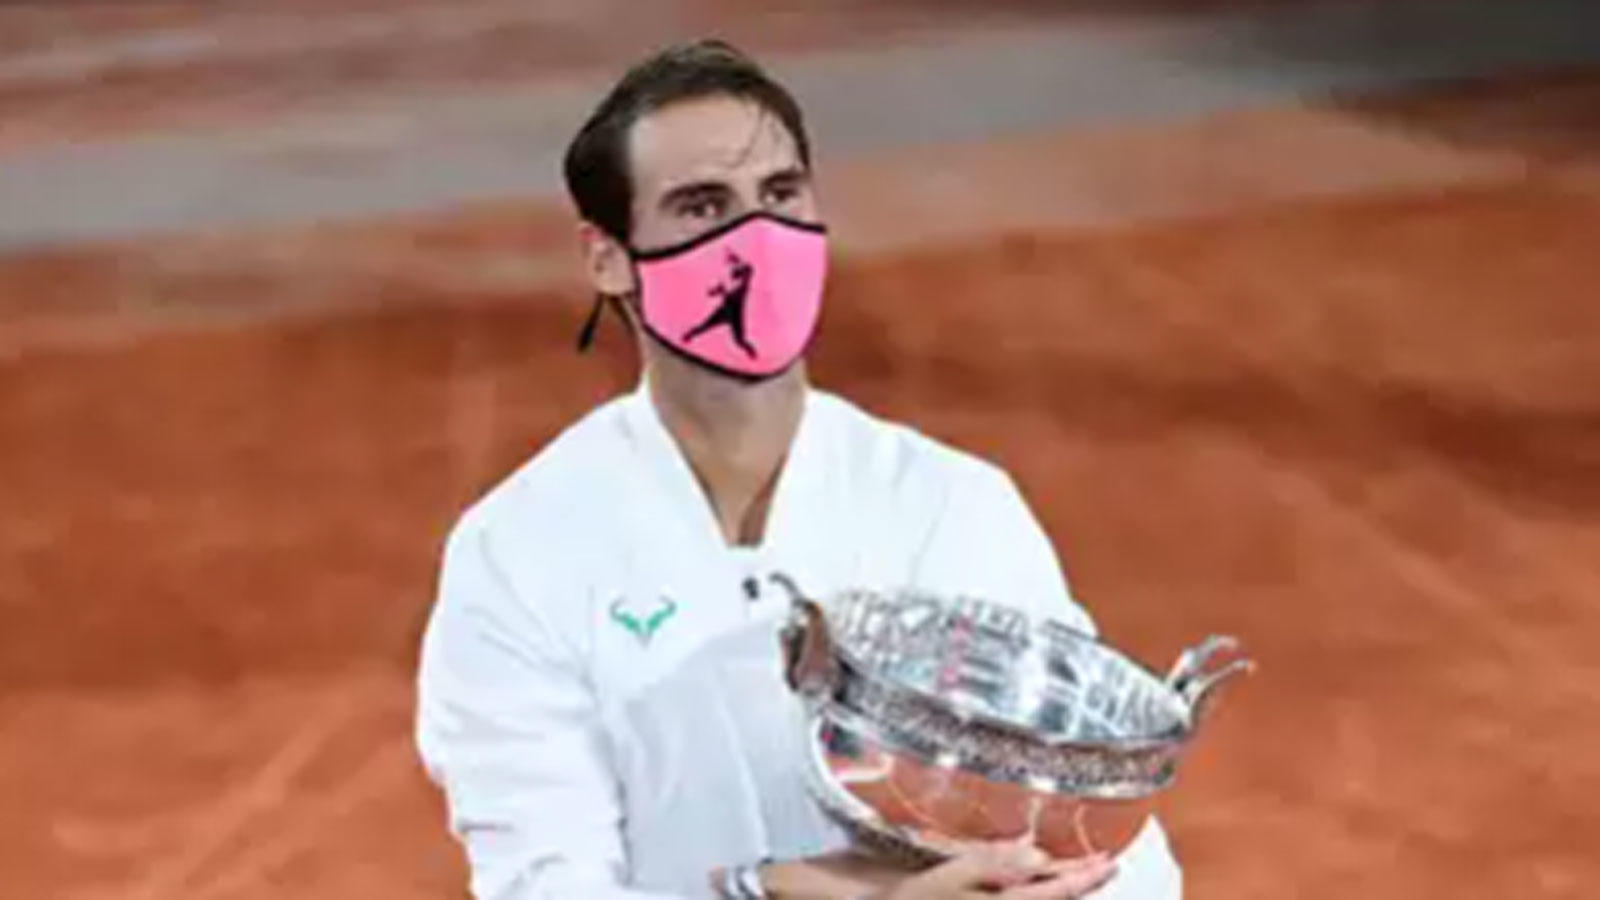 nadal-beats-djokovic-to-win-13th-french-open